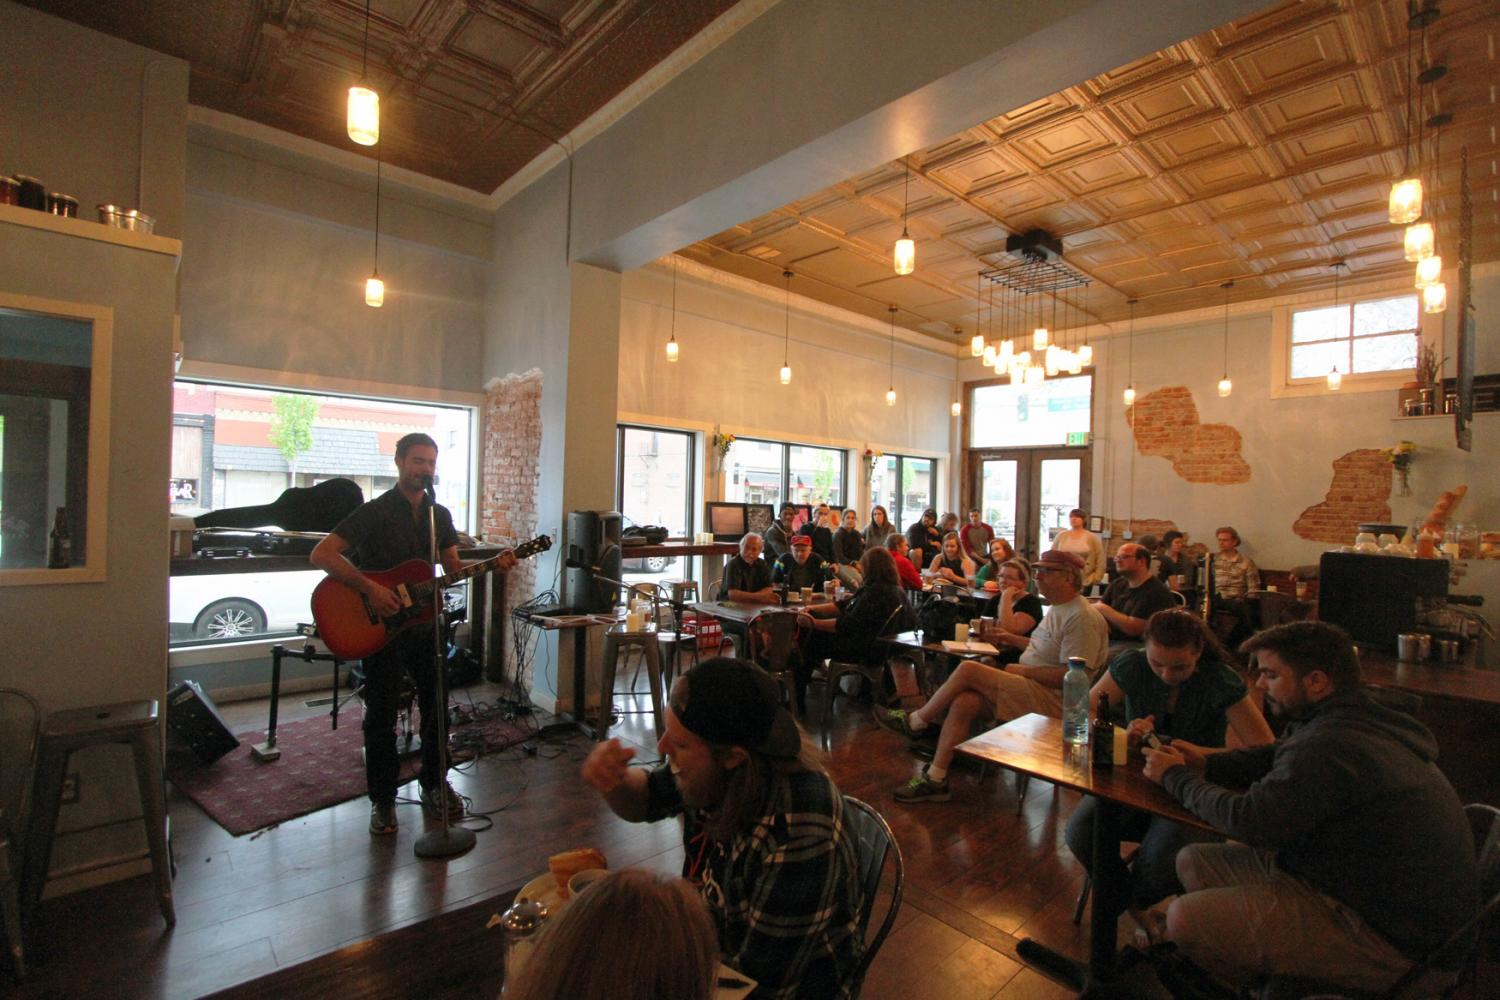 William Nover performing to a packed audience at The Mason Jar's open mic night